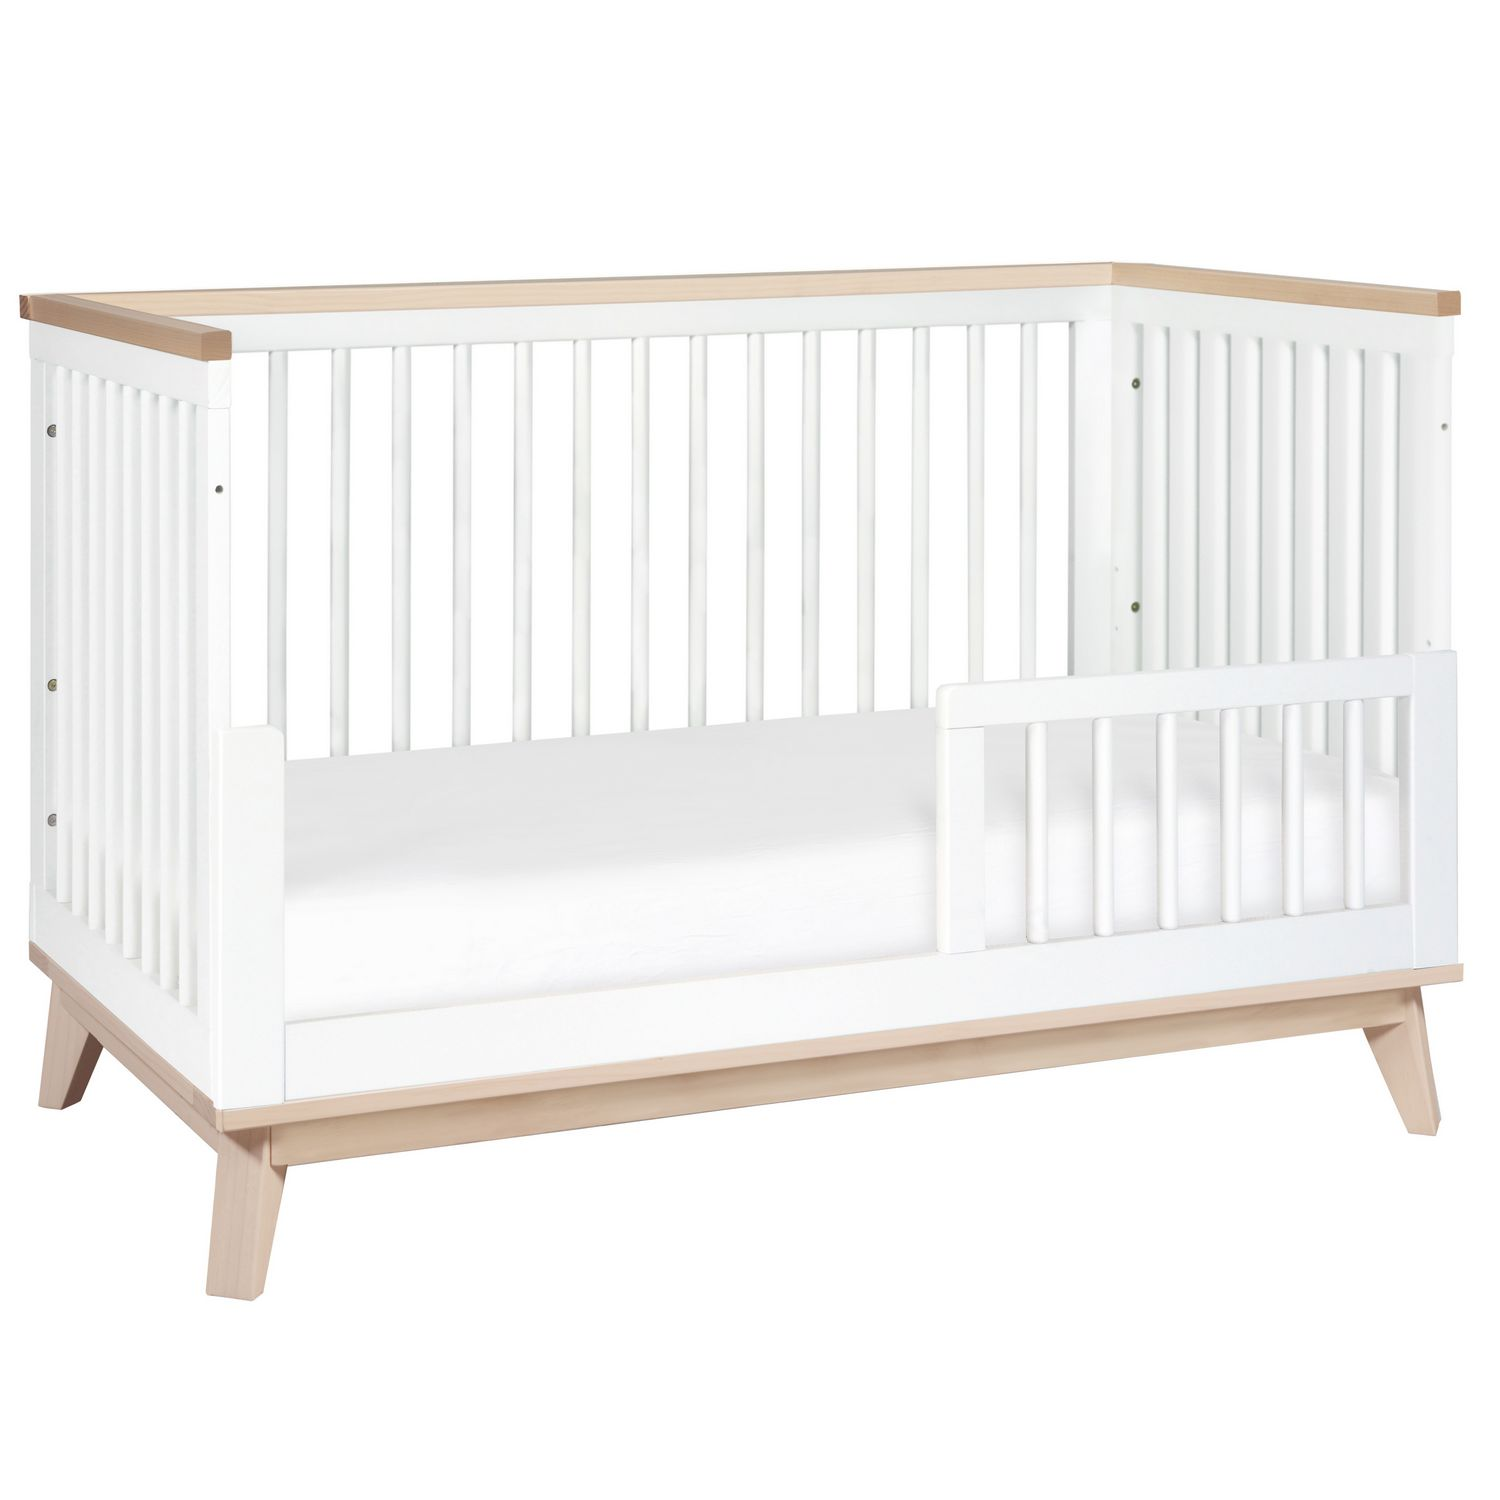 today pine modo bed toddler shipping convertible product free overstock garden conversion crib home cribs with babyletto wood kit in